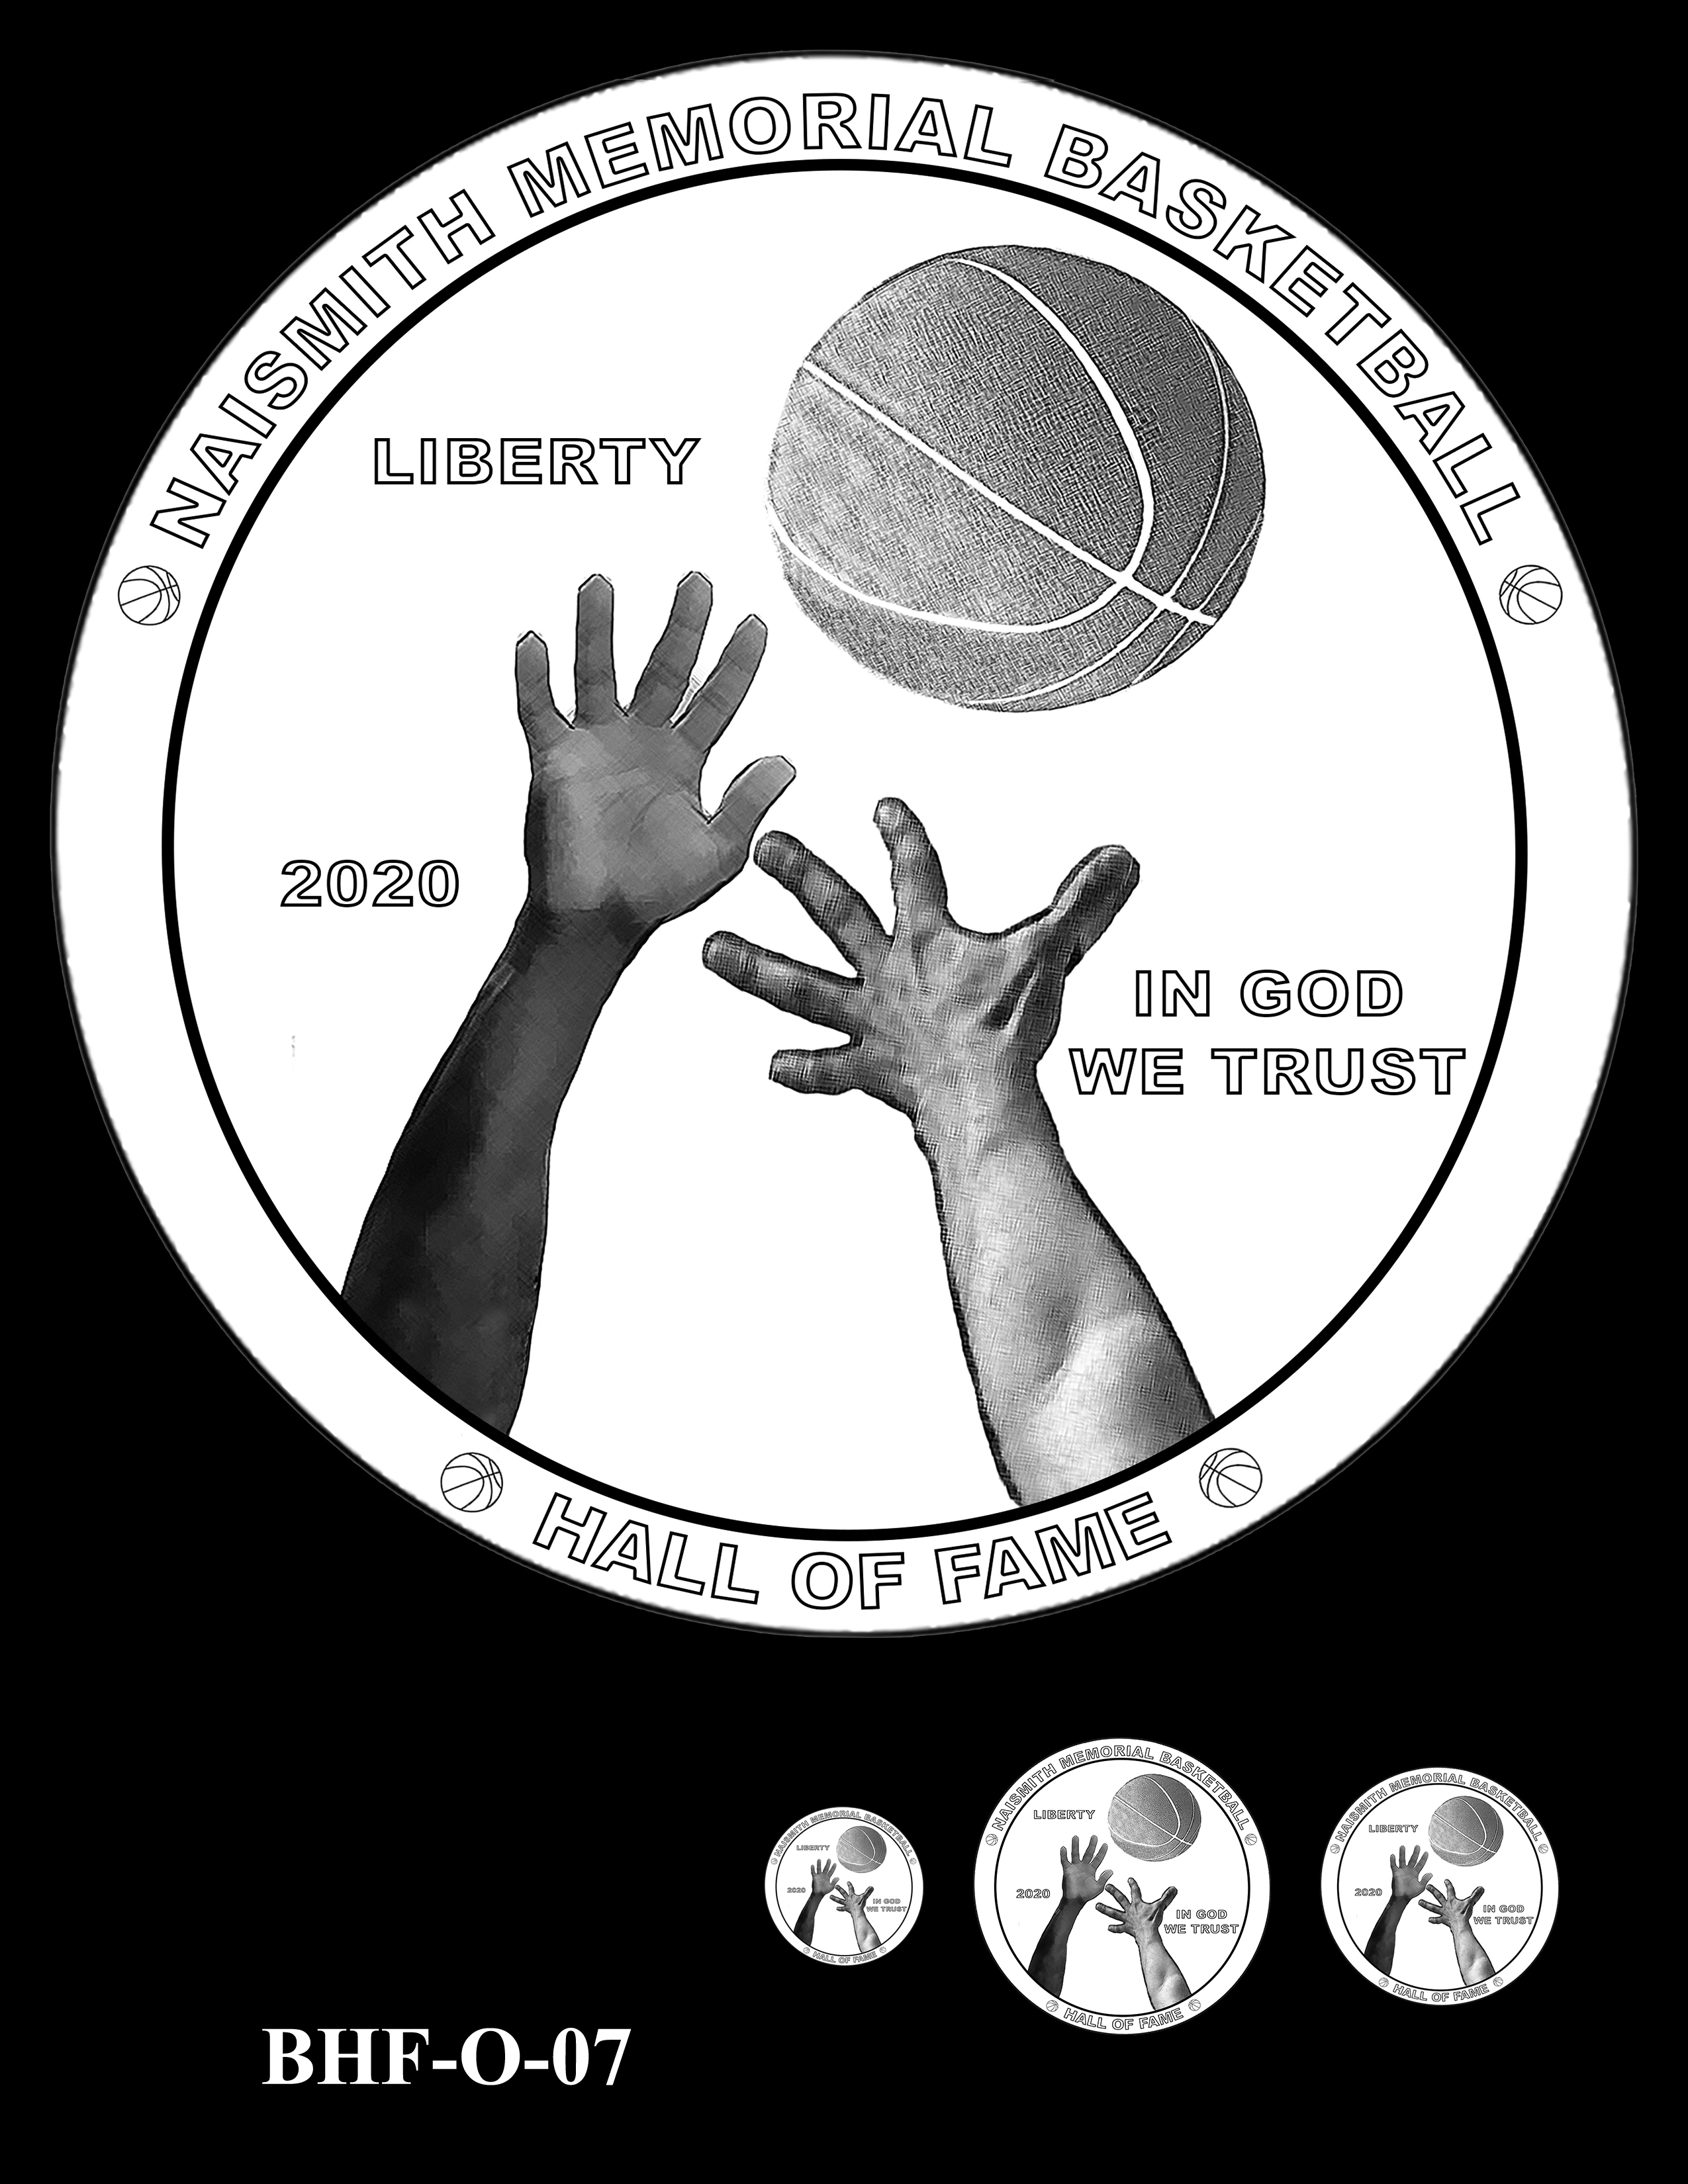 BHF-O-07 -- 2020 Basketball Hall of Fame Commemorative Coin Program - Common Obverse